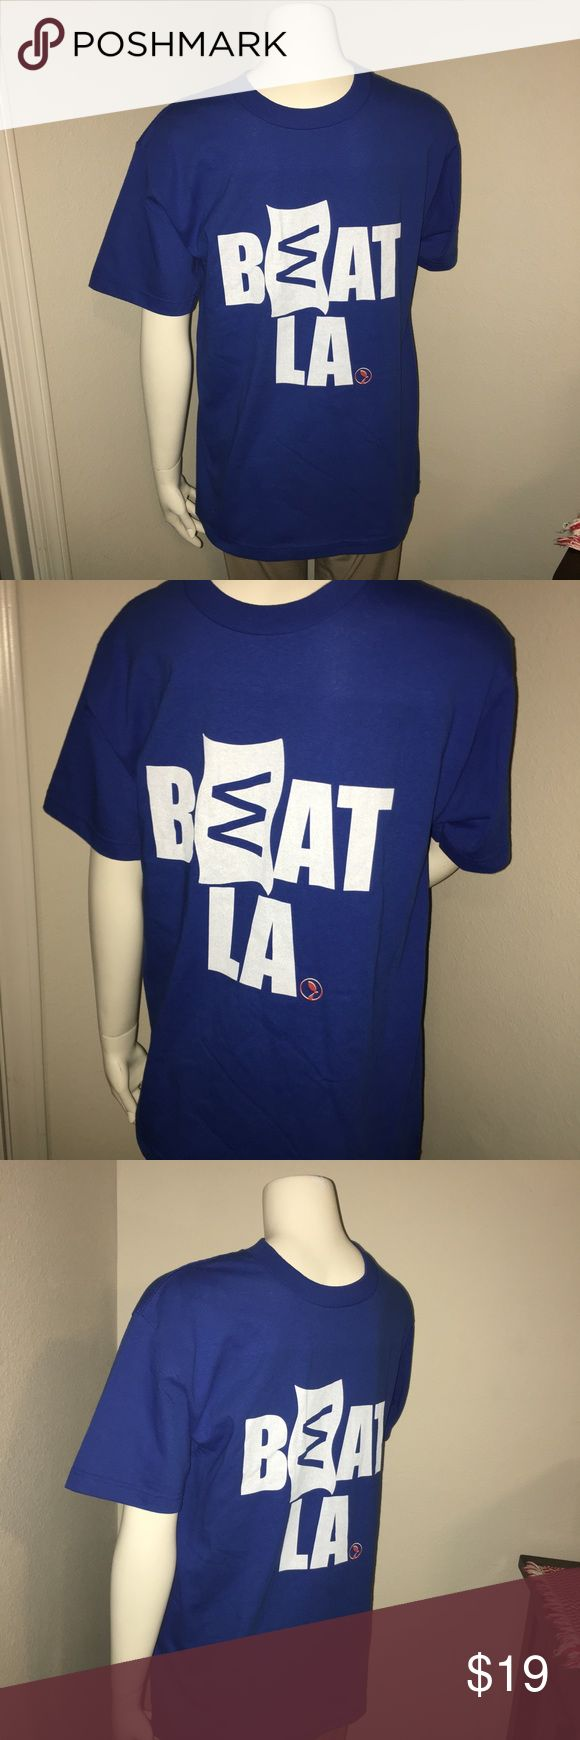 """MLB cubs SS """"BEAT LA"""" W flag shirt sz: M Thank you for viewing my listing, for sale is a men's, Chicago cubs, short sleeve graphic T-shirt. The T-shirt says """"BEAT LA"""" with the """"E"""" in beat being the cubs """"W"""" flag.  Very awesome shirt. The shirt is in excellent condition like new!  No rips or stains, if you have any questions or would like additional photos please feel free to ask.  From under one arm to under the other measures appx 20"""" from the top of the shoulder to the bottom of the shirt…"""